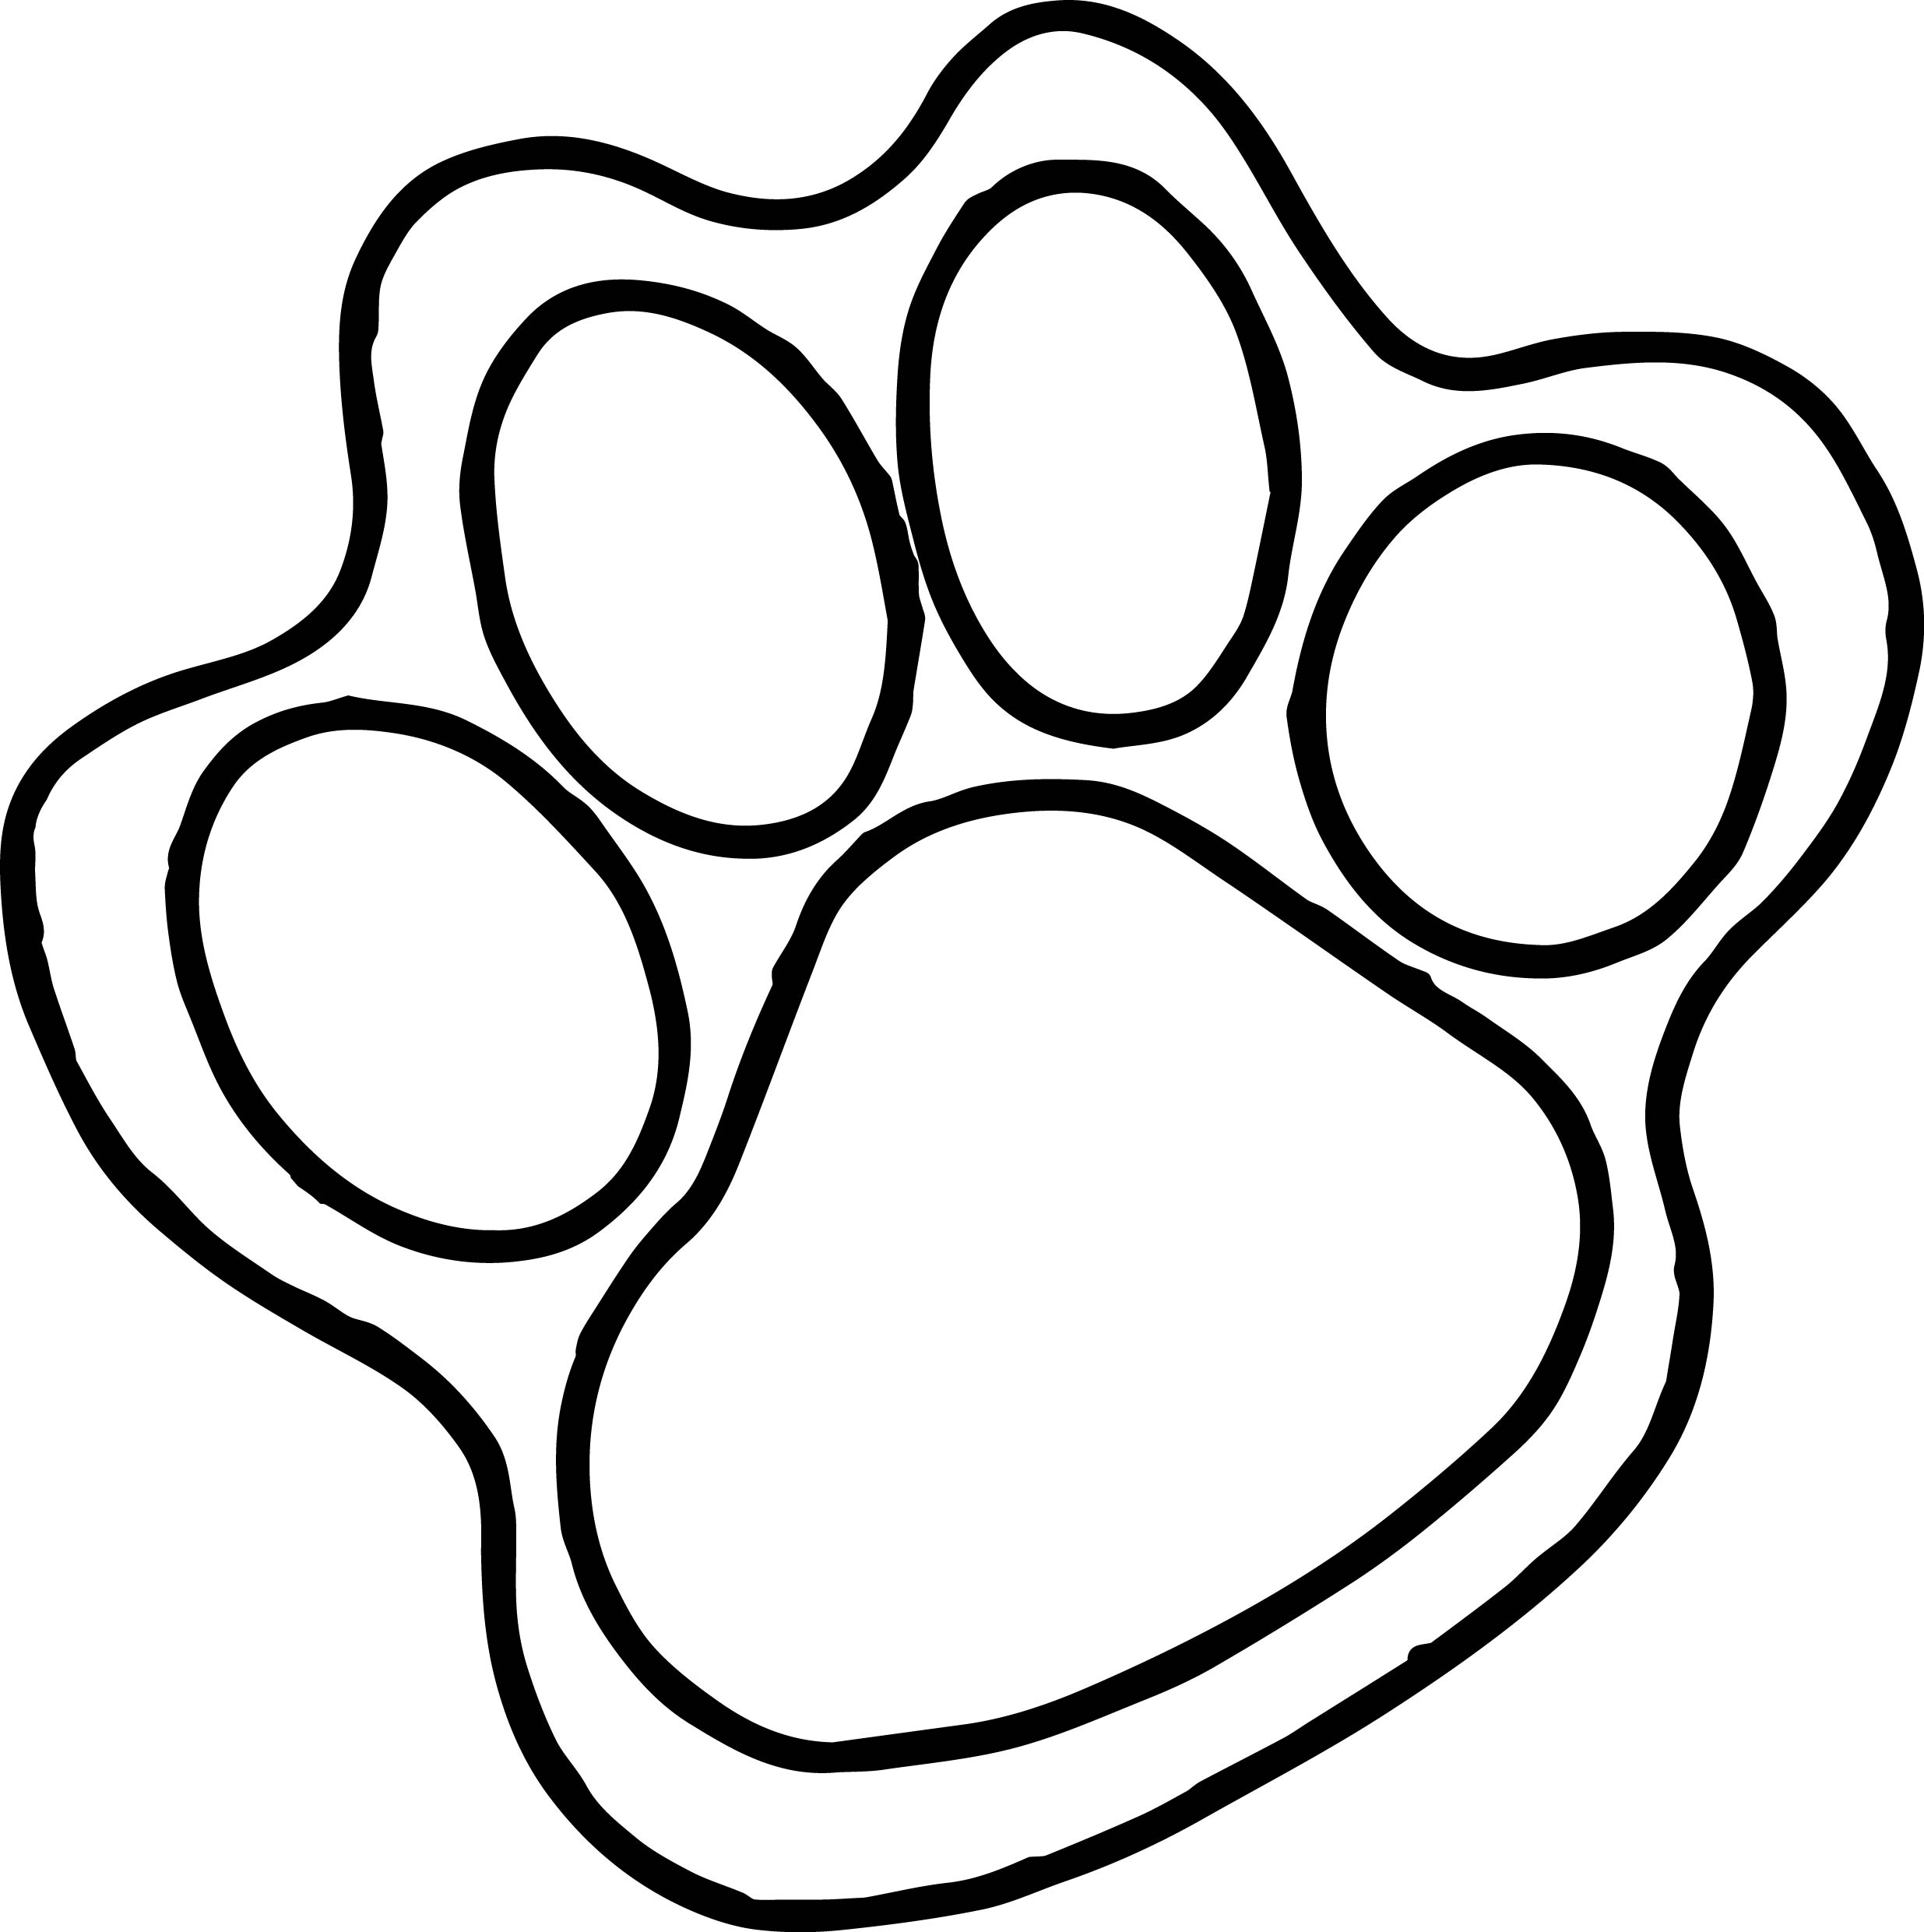 tiger paw coloring page paw print outline free download best paw print outline coloring page paw tiger